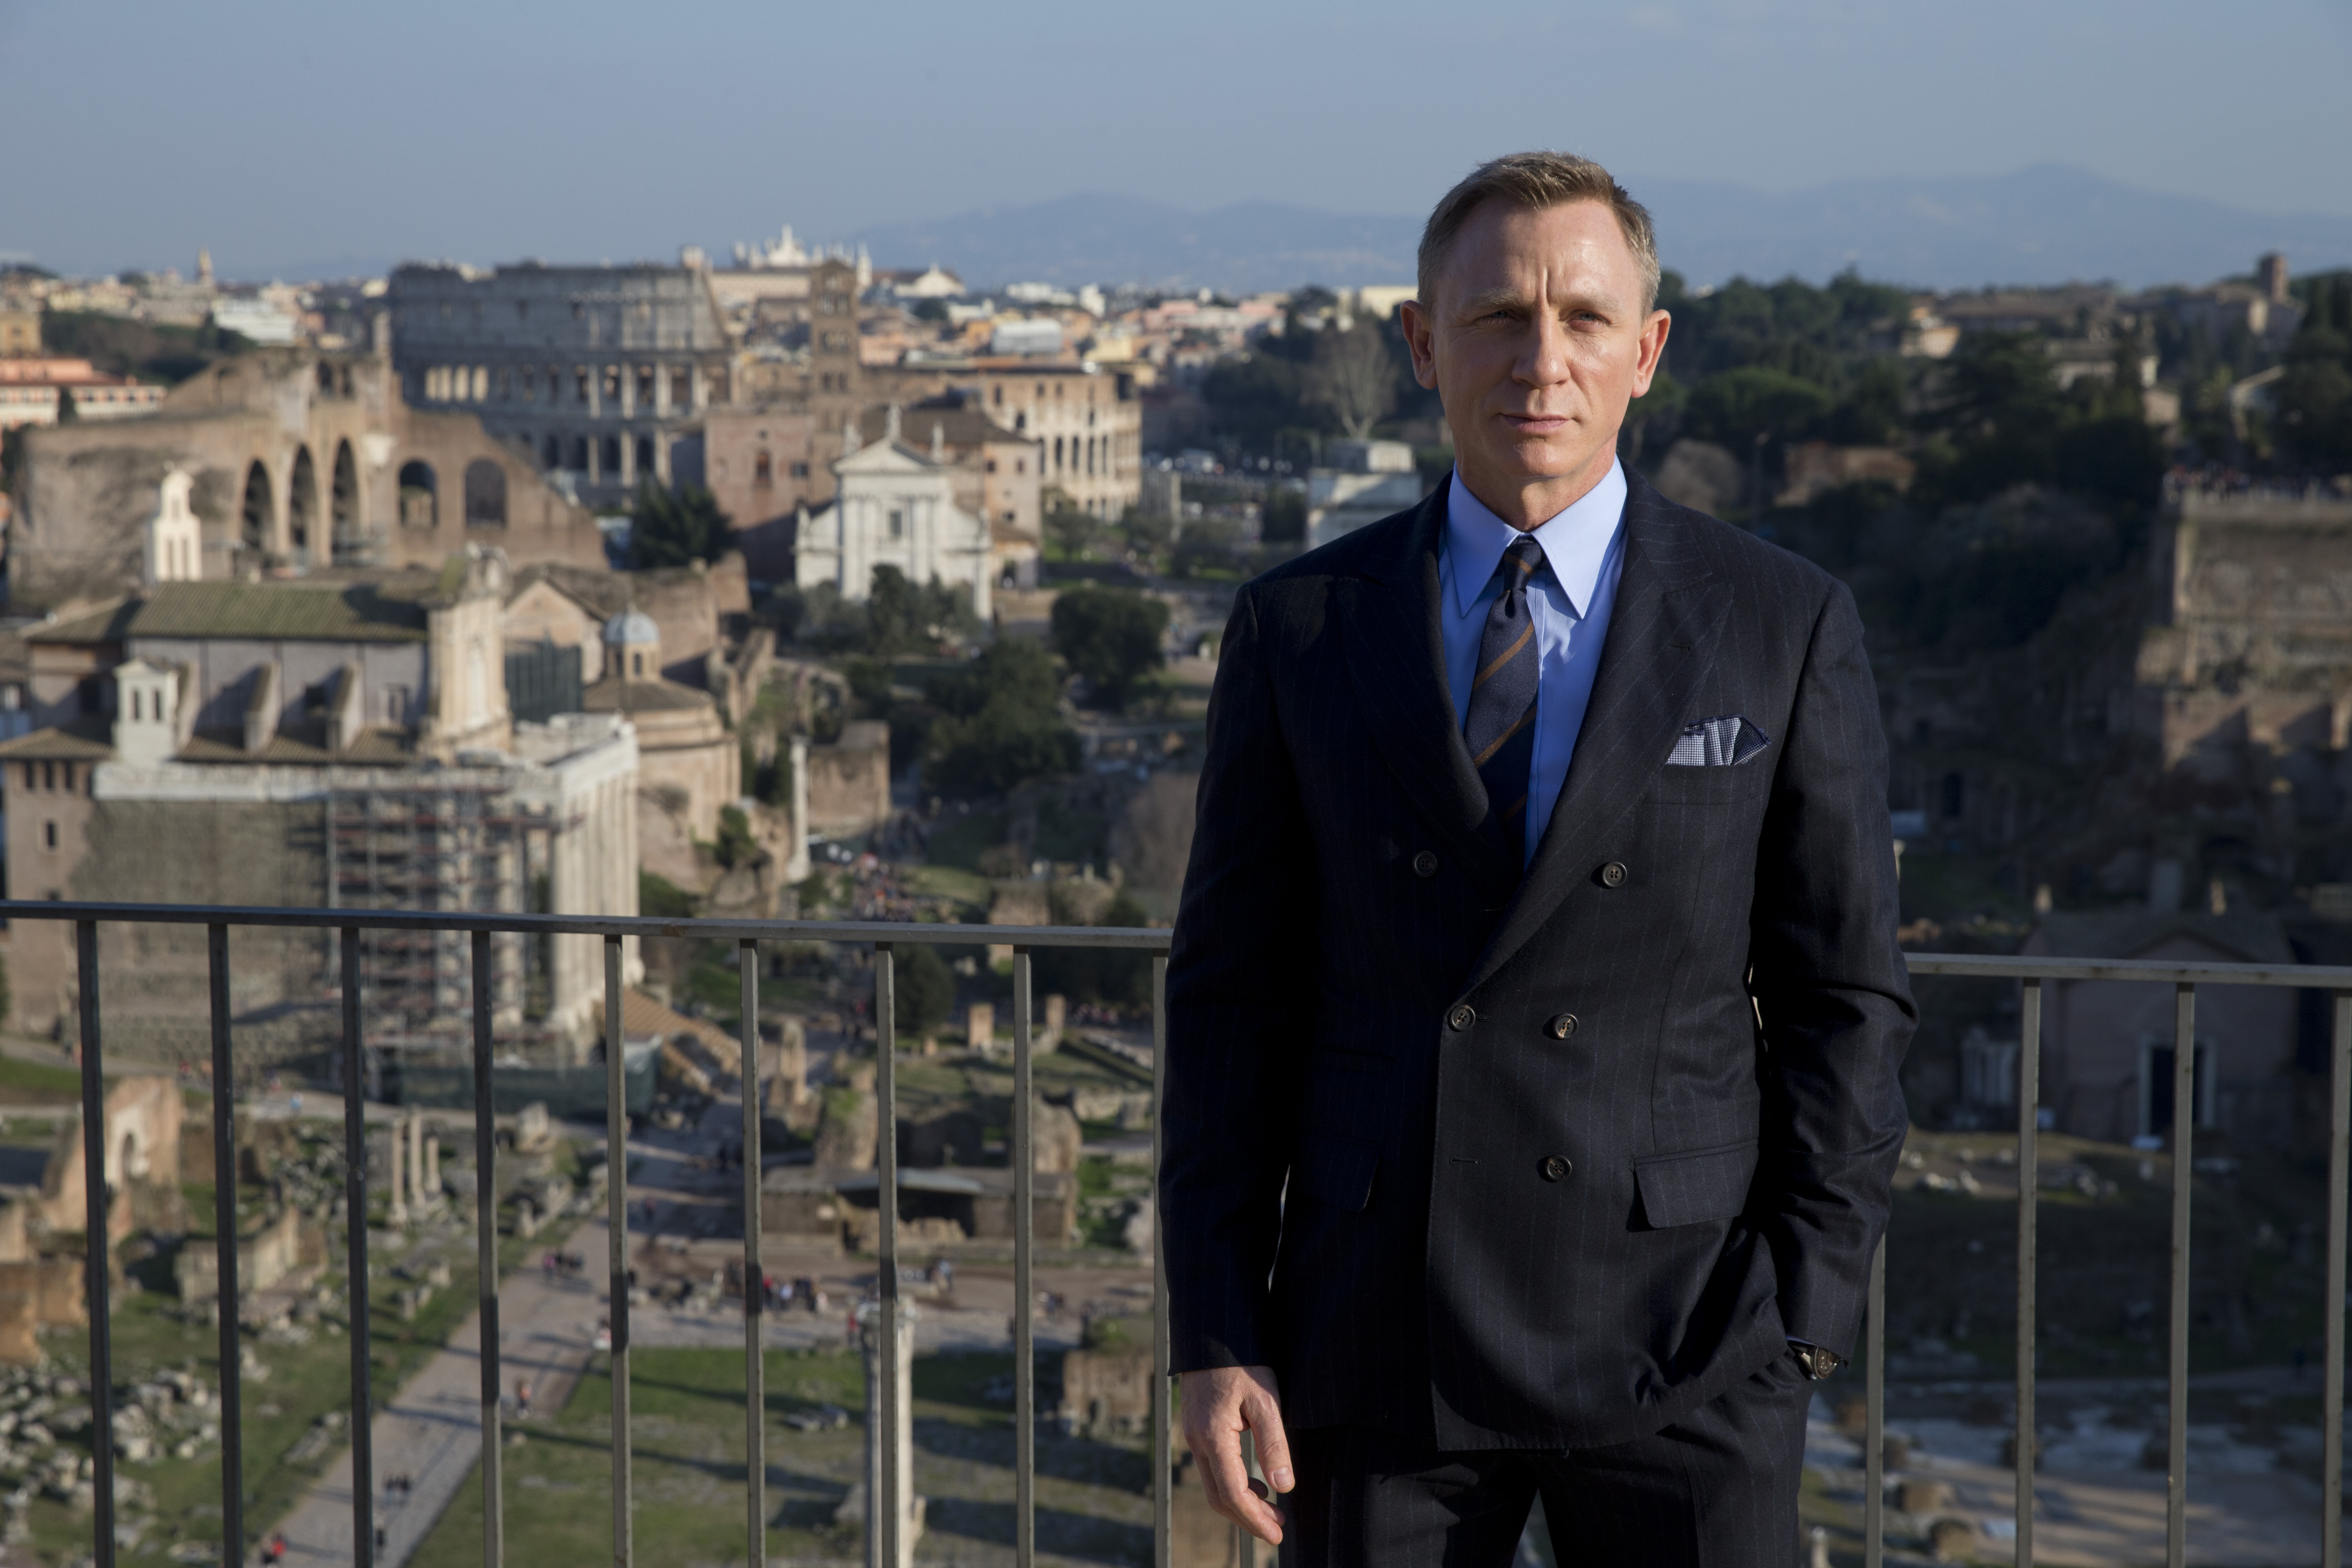 "FILE - In this Wednesday Feb. 18, 2015 file photo, actor Daniel Craig poses during a photo call for the latest James Bond movie 'Spectre', in Rome. Actor Daniel Craig has said he wants to Â?move onÂ? from the James Bond franchise and that for now, he would rather ""slash my wrists"" than do another Bond movie. (AP Photo/Andrew Medichini, File)"